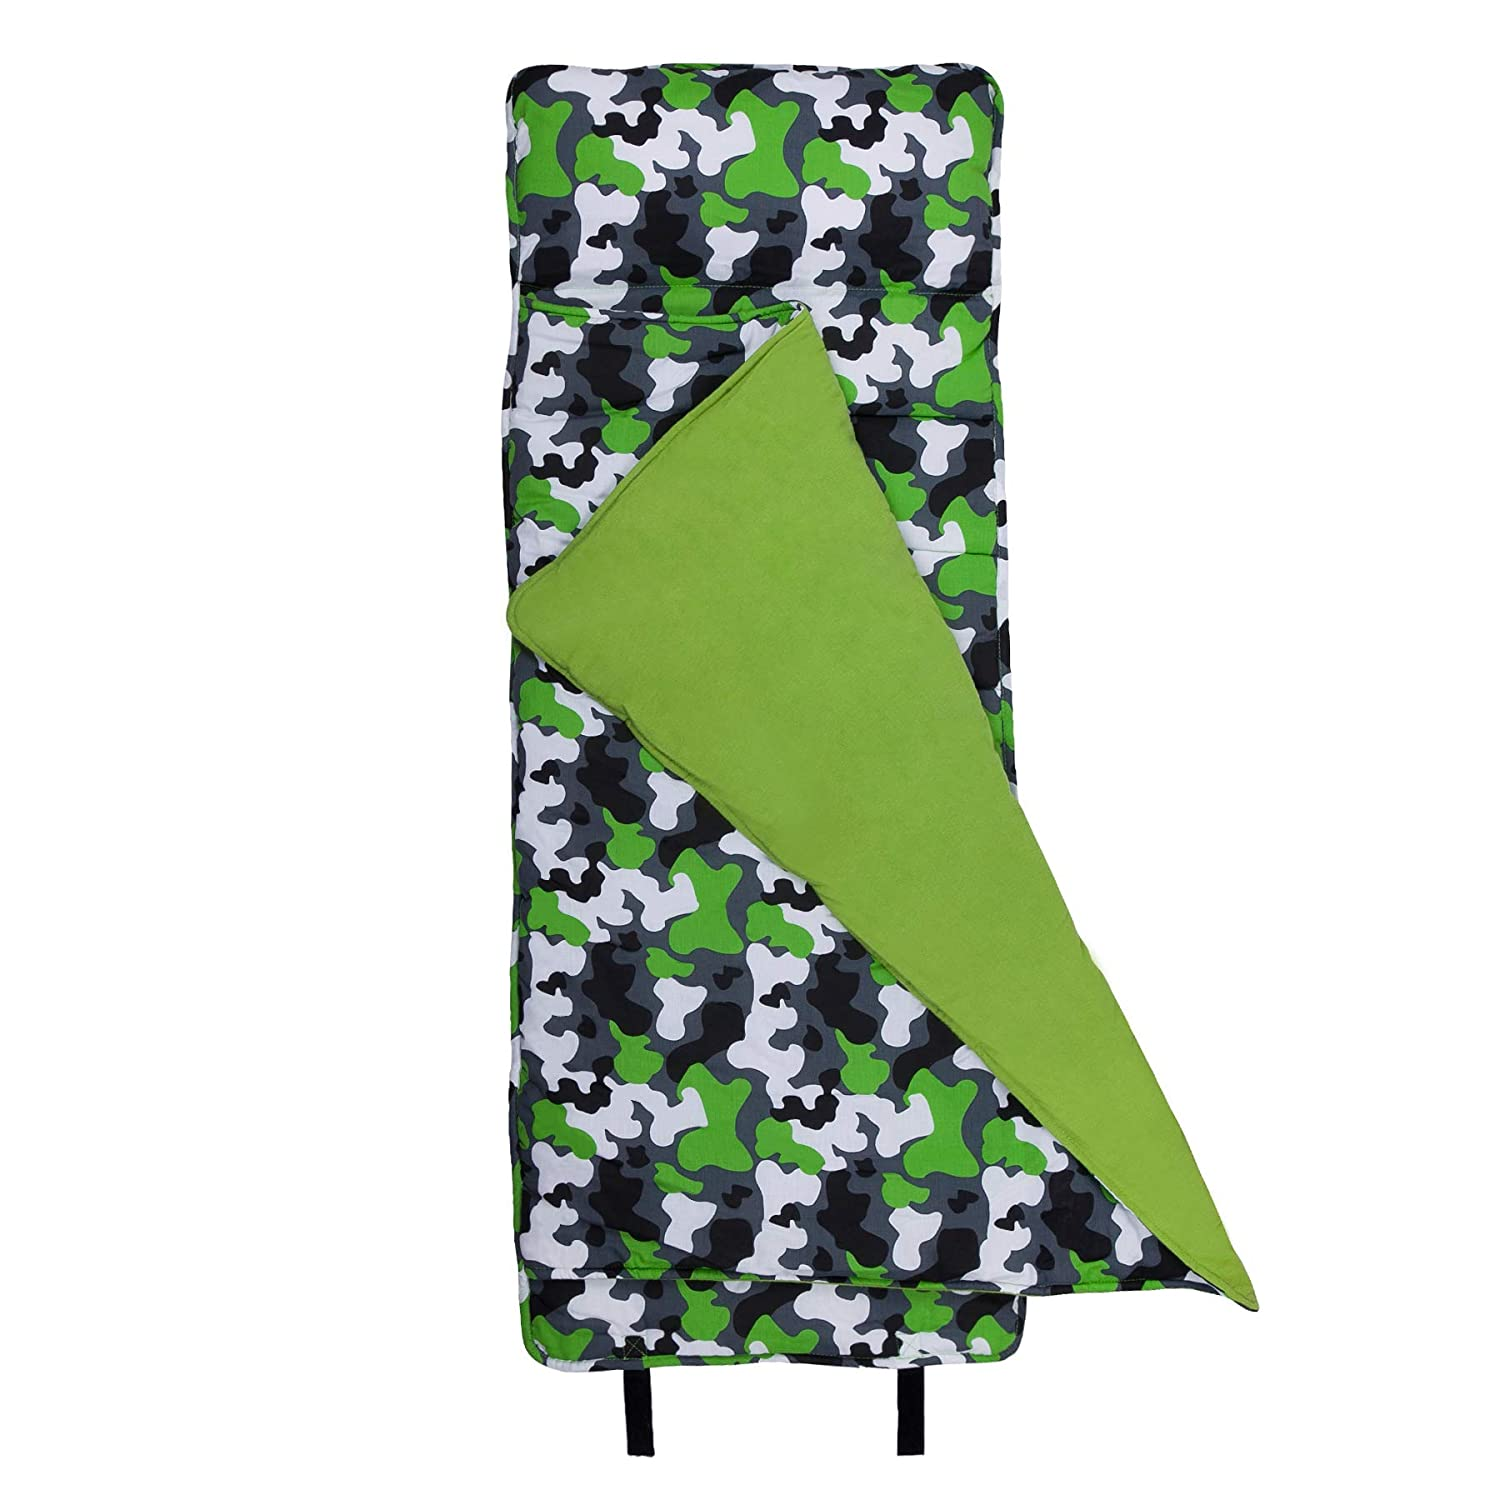 Wildkin Blue Camo Original Nap Mat 28213